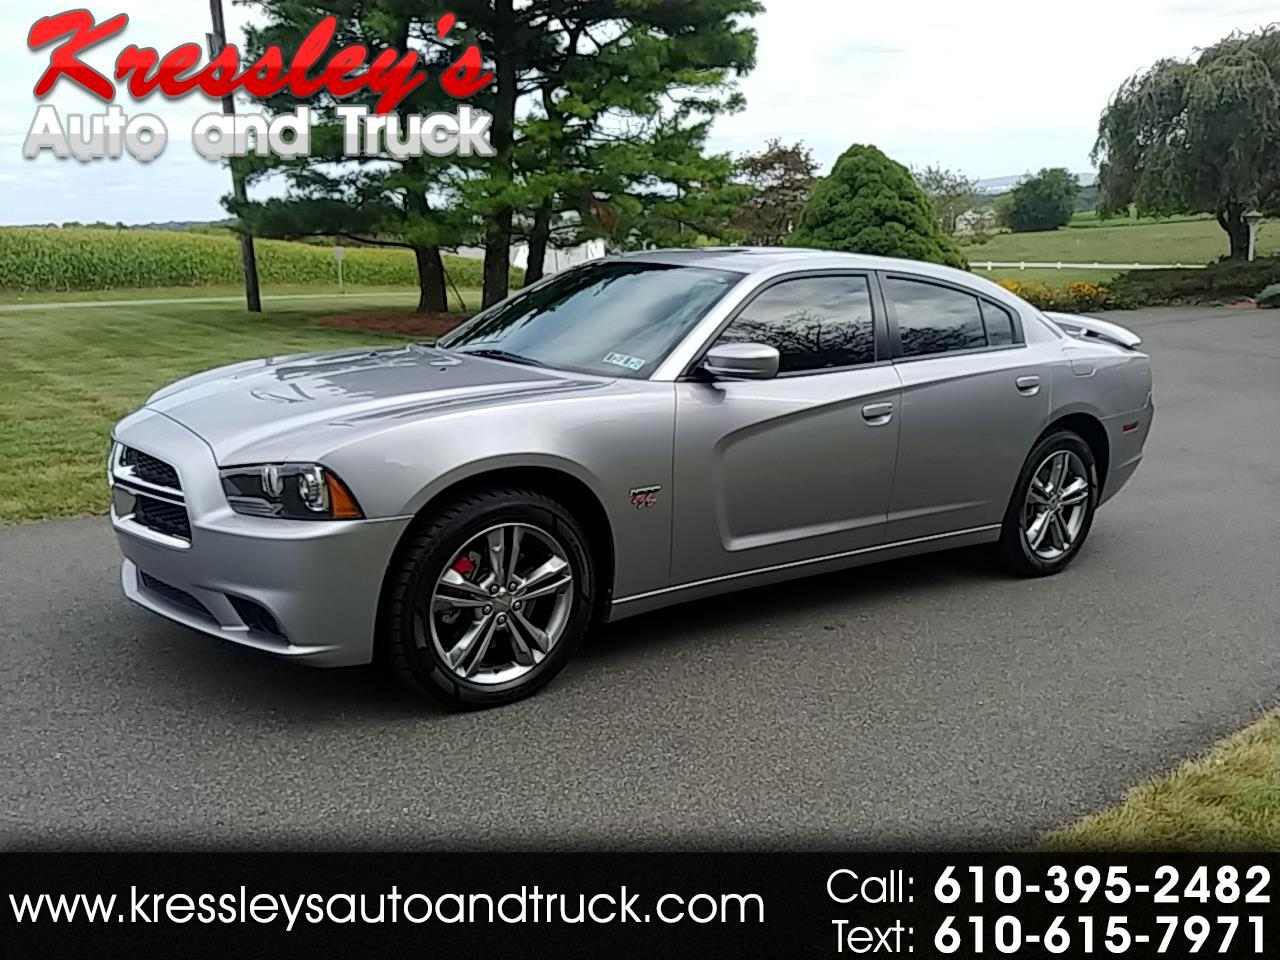 2014 Dodge Charger 4dr Sdn RT Plus AWD